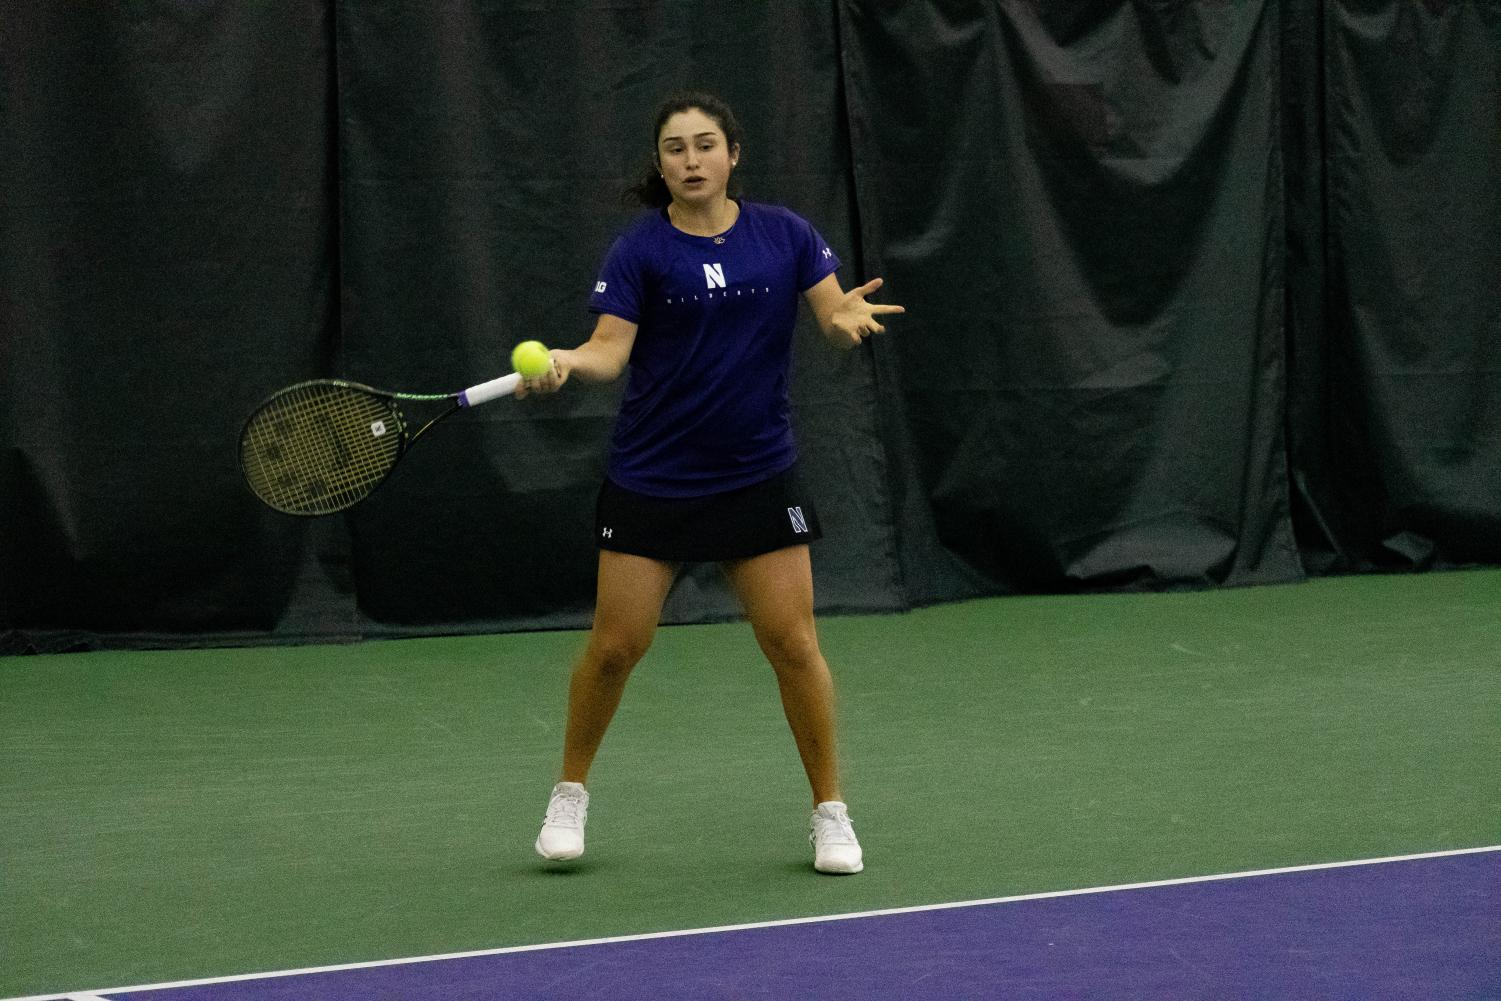 Inci Ogut hits the ball. The sophomore won the championship match of her portion of the bracket during the Wildcat Invite.